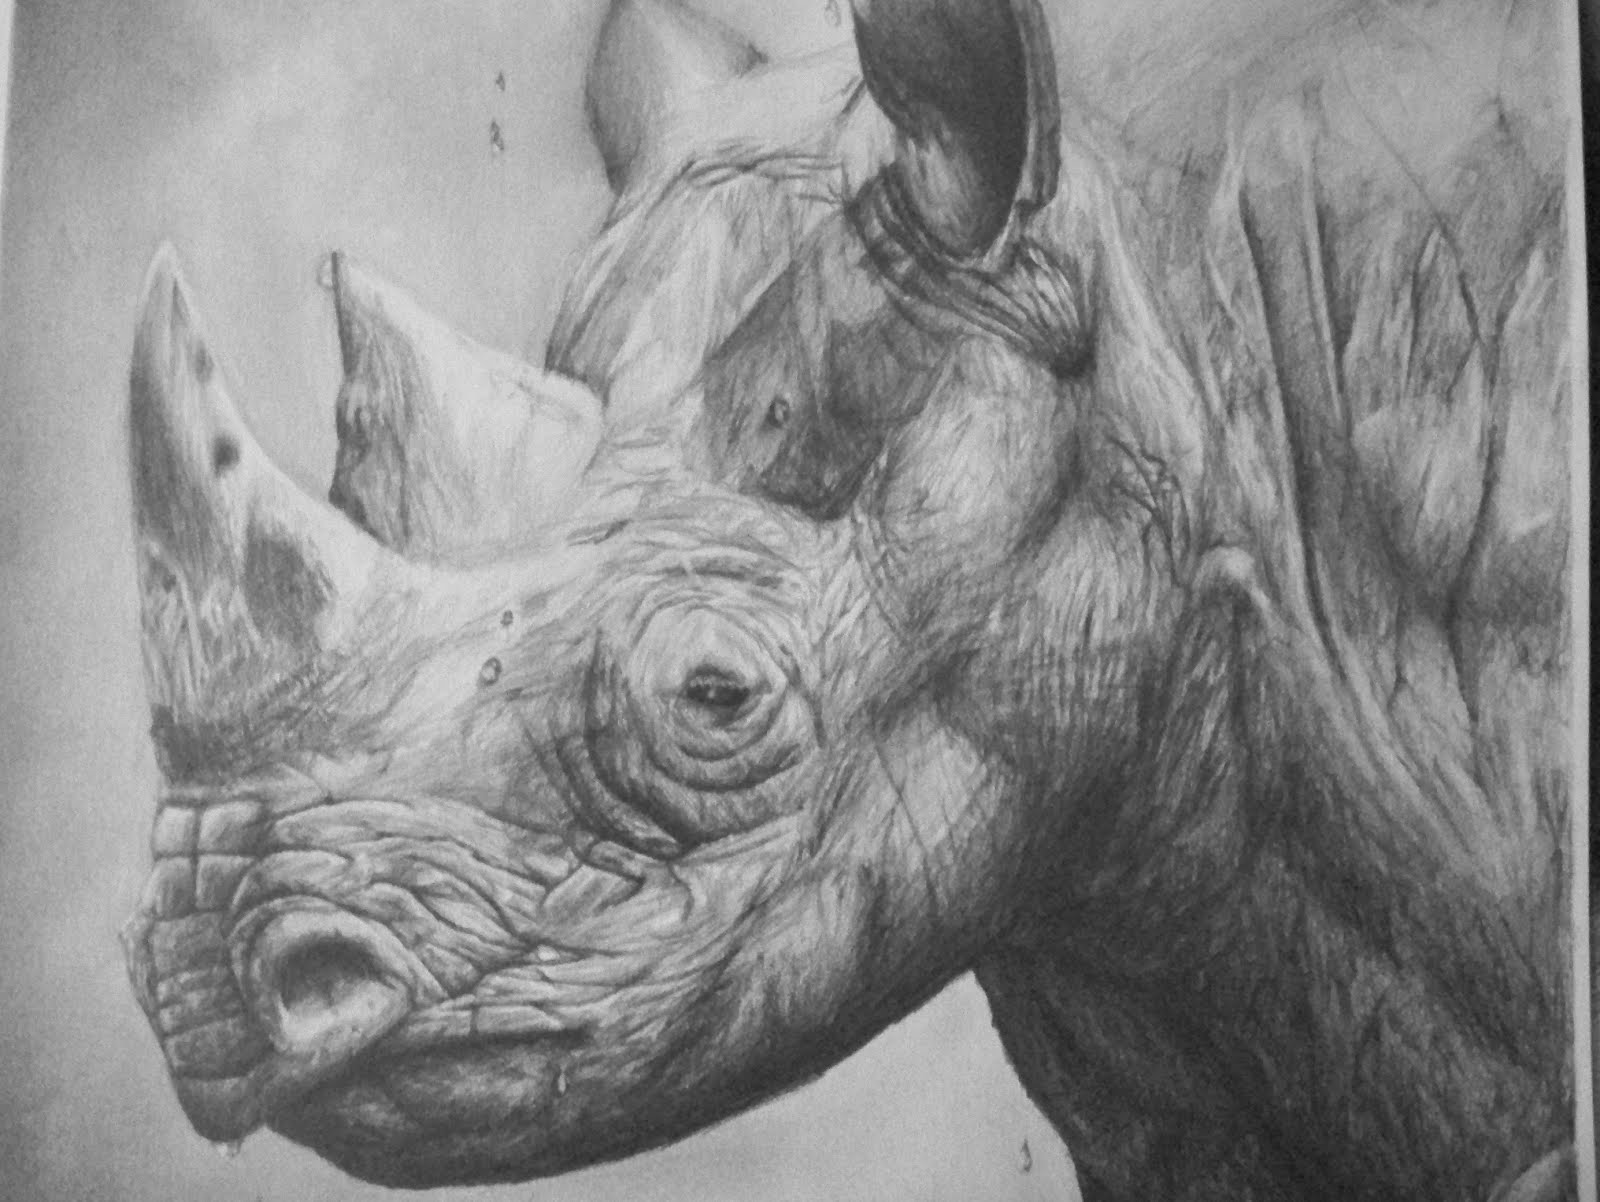 Pencil drawings of wild animals graphite pencil drawings